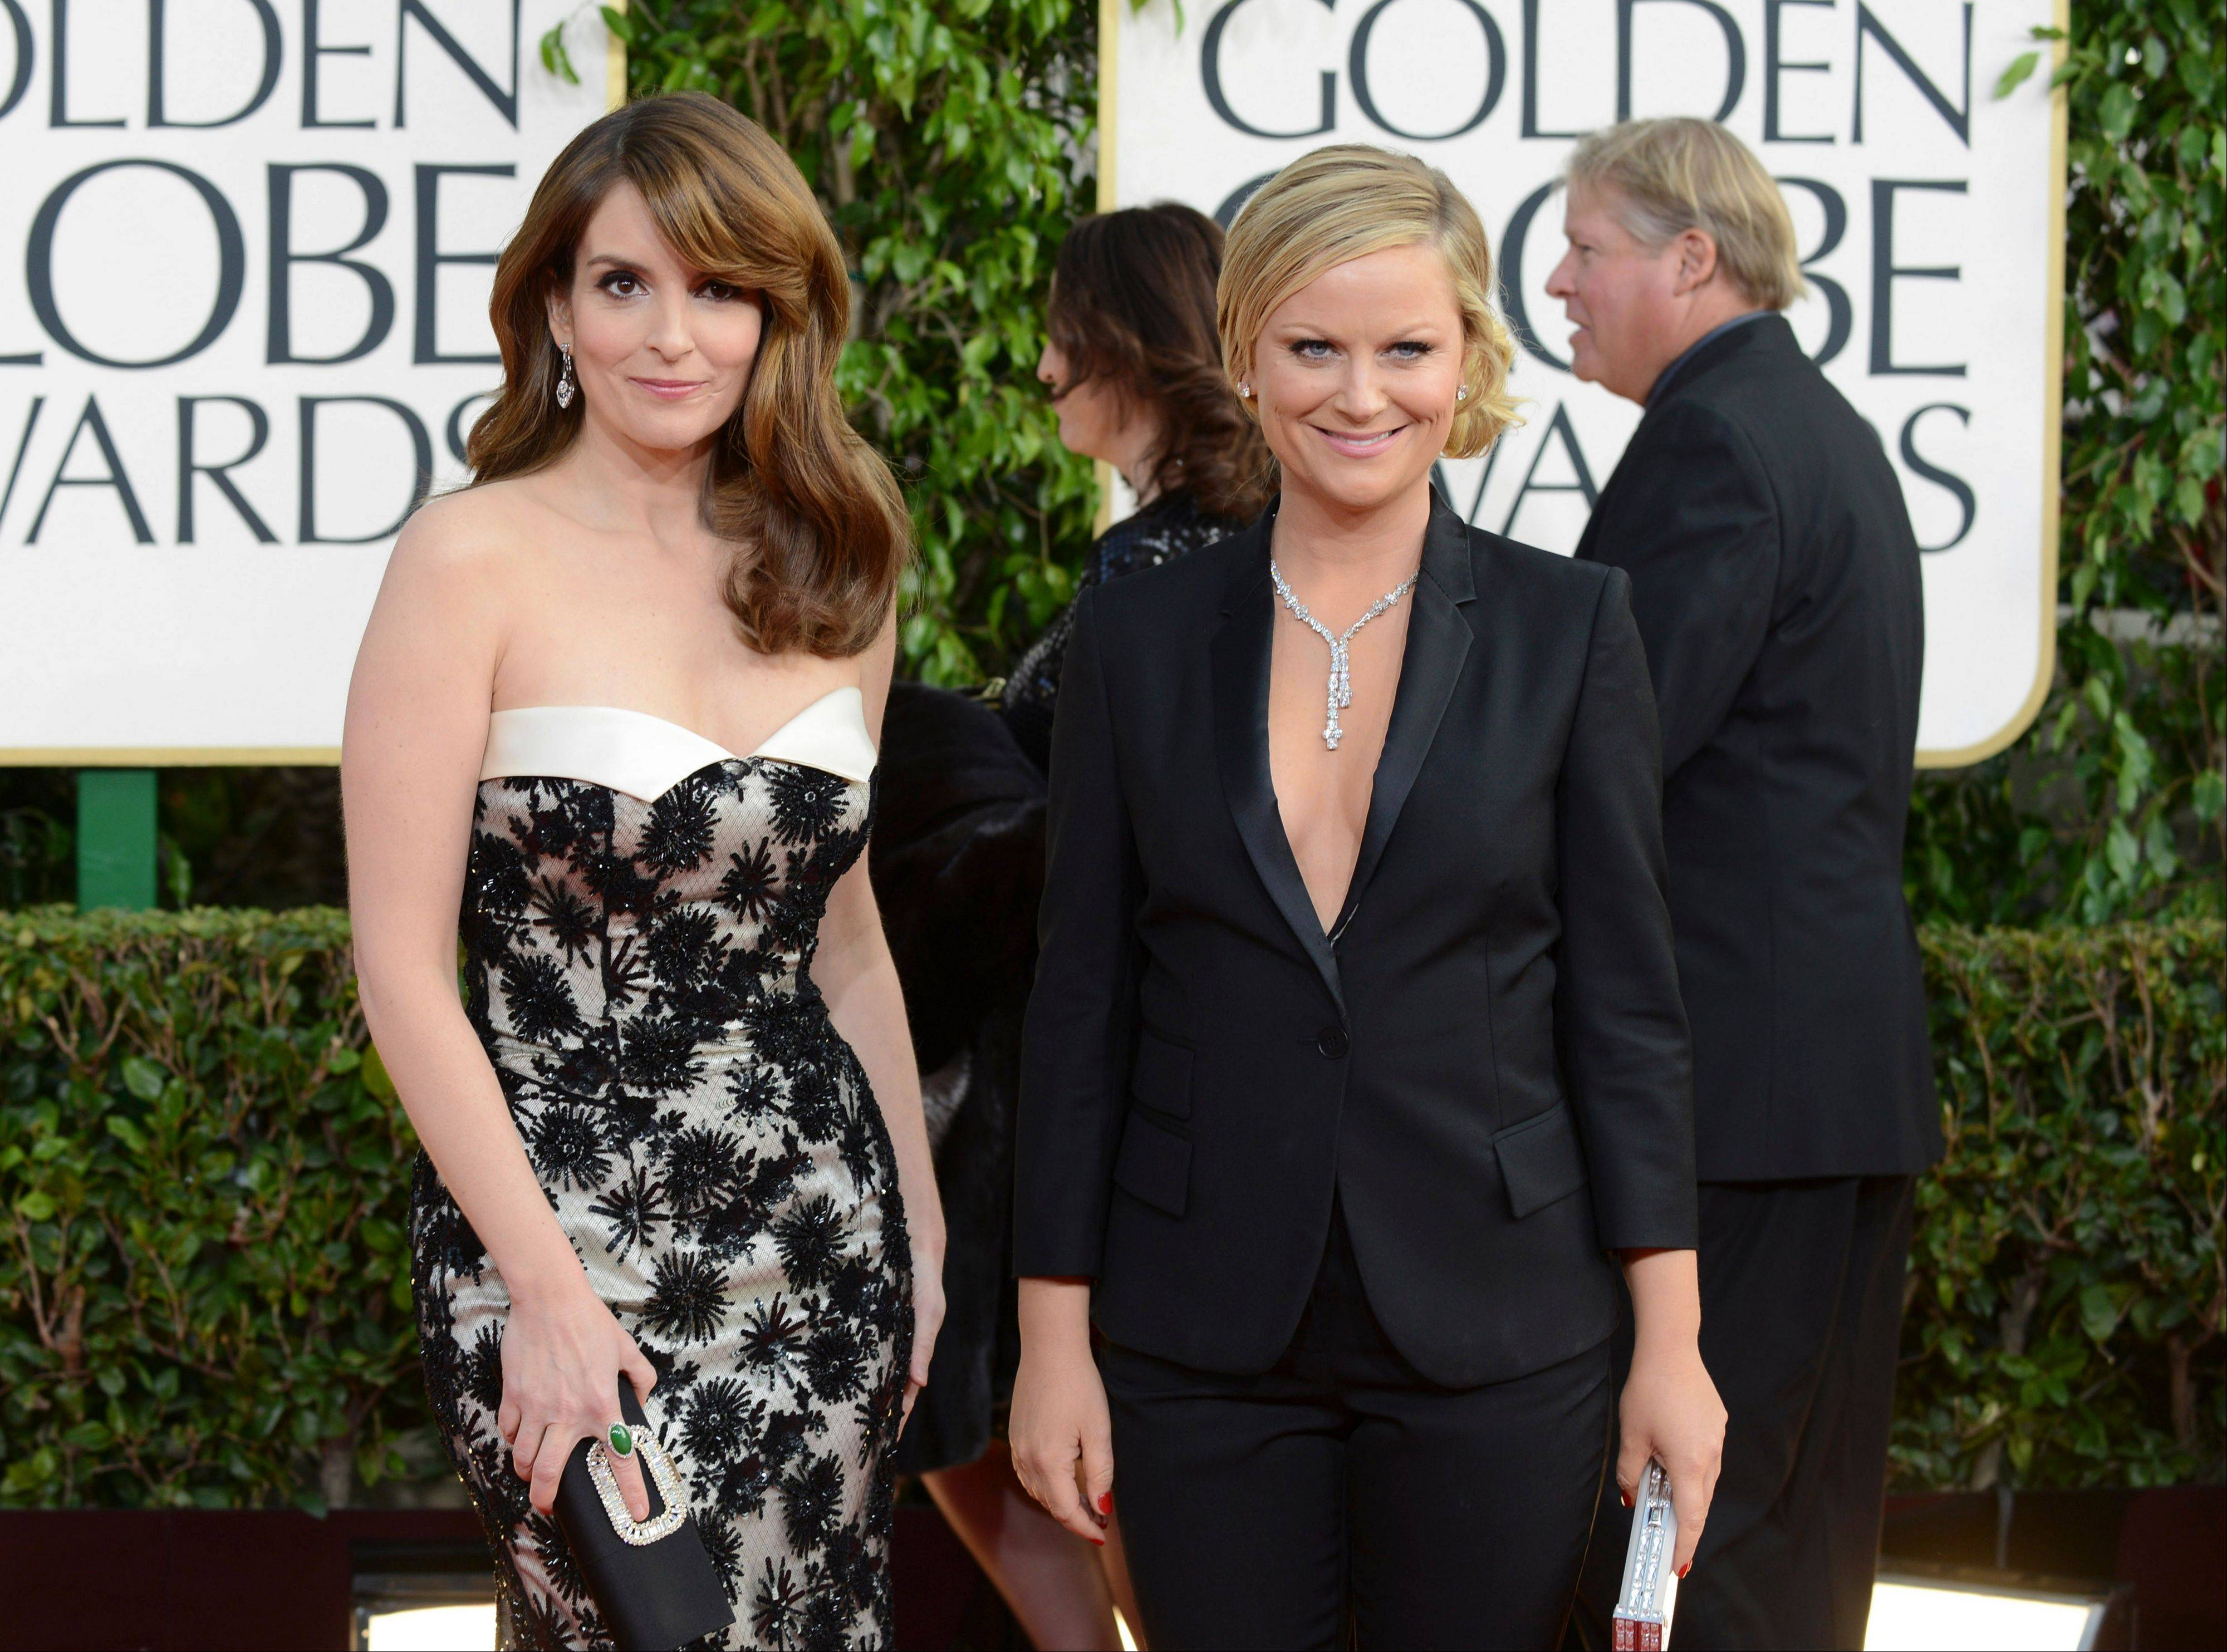 Show hosts Tina Fey, left, and Amy Poehler arrive at the 70th Annual Golden Globe Awards at the Beverly Hilton Hotel on Sunday Jan. 13, 2013, in Beverly Hills, Calif.